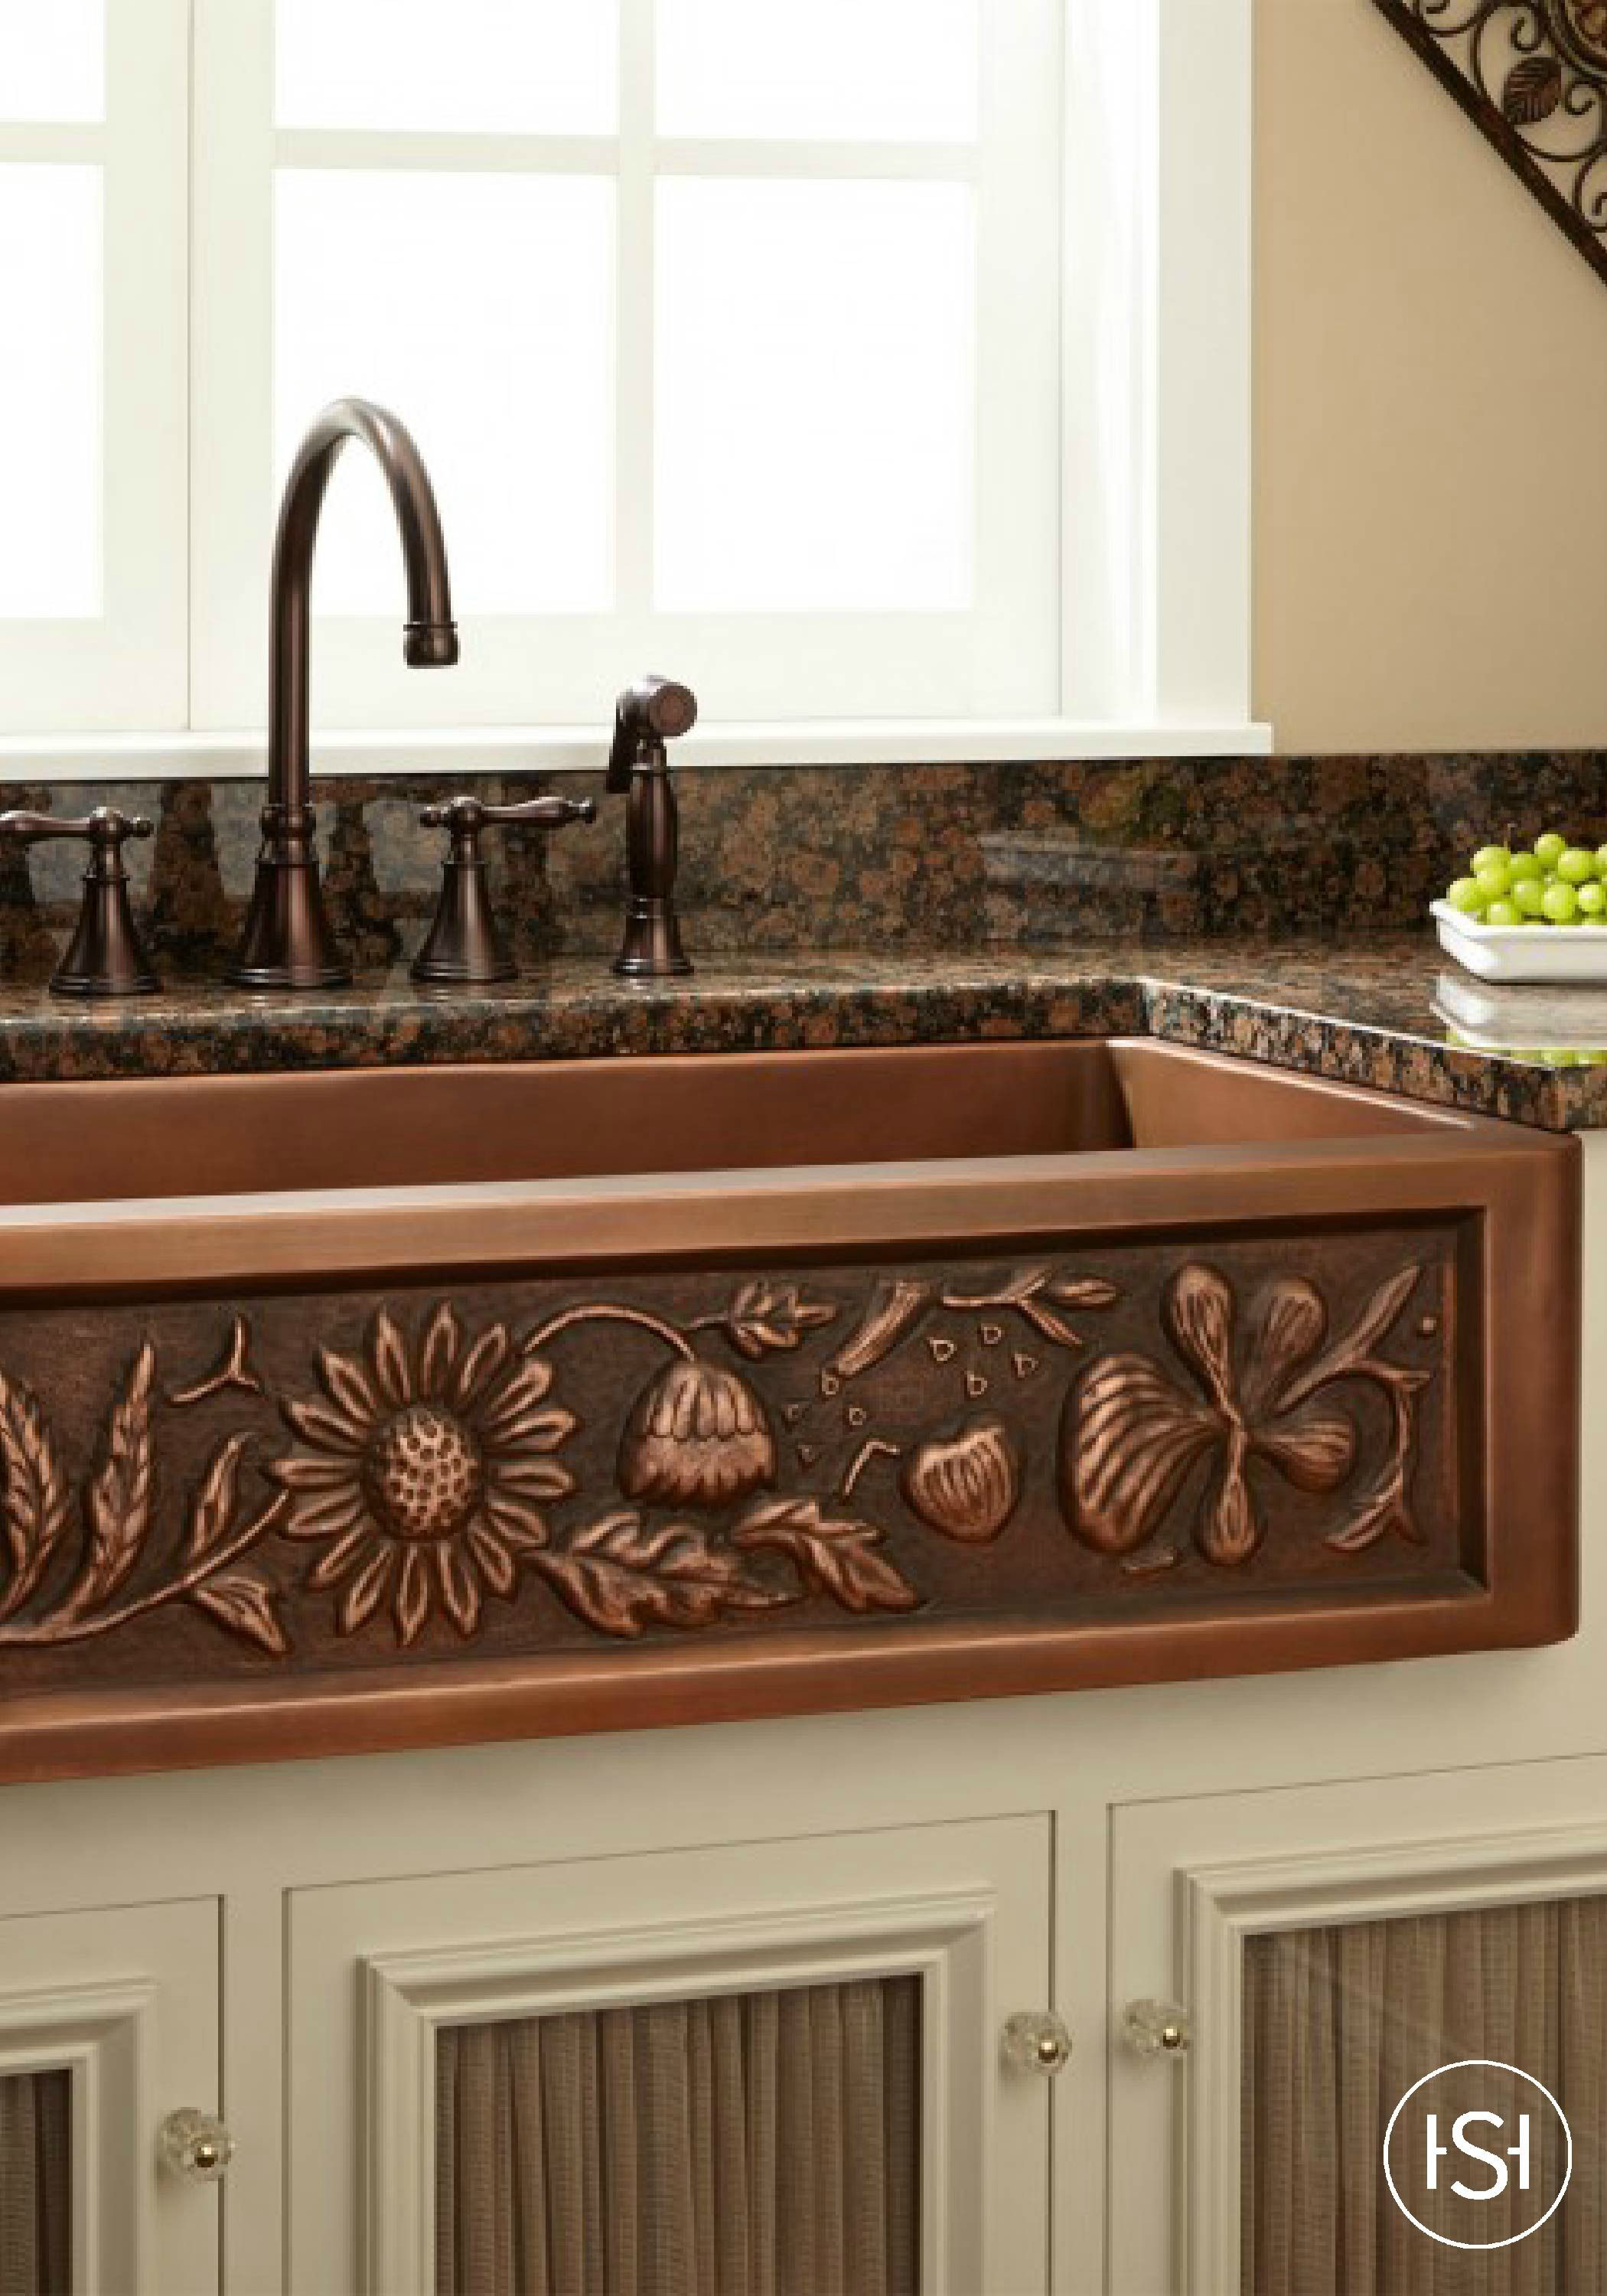 Add a touch of natural beauty to your kitchen with this